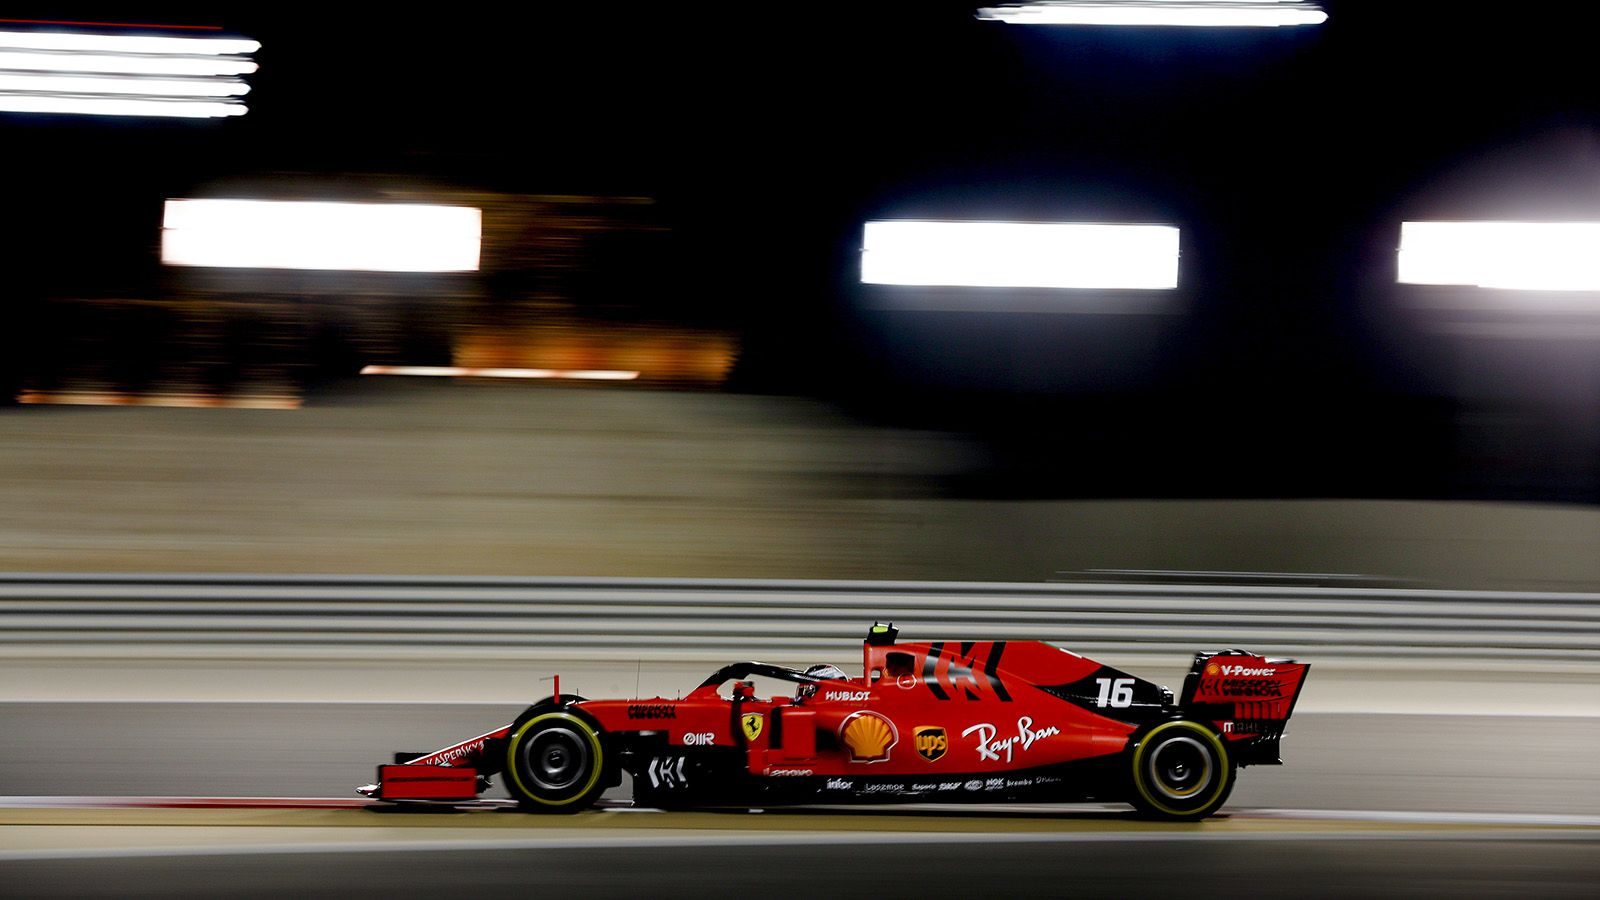 F1 Bahrain Qualifying Results Charles Leclerc Scores Maiden Pole In Record Fashion